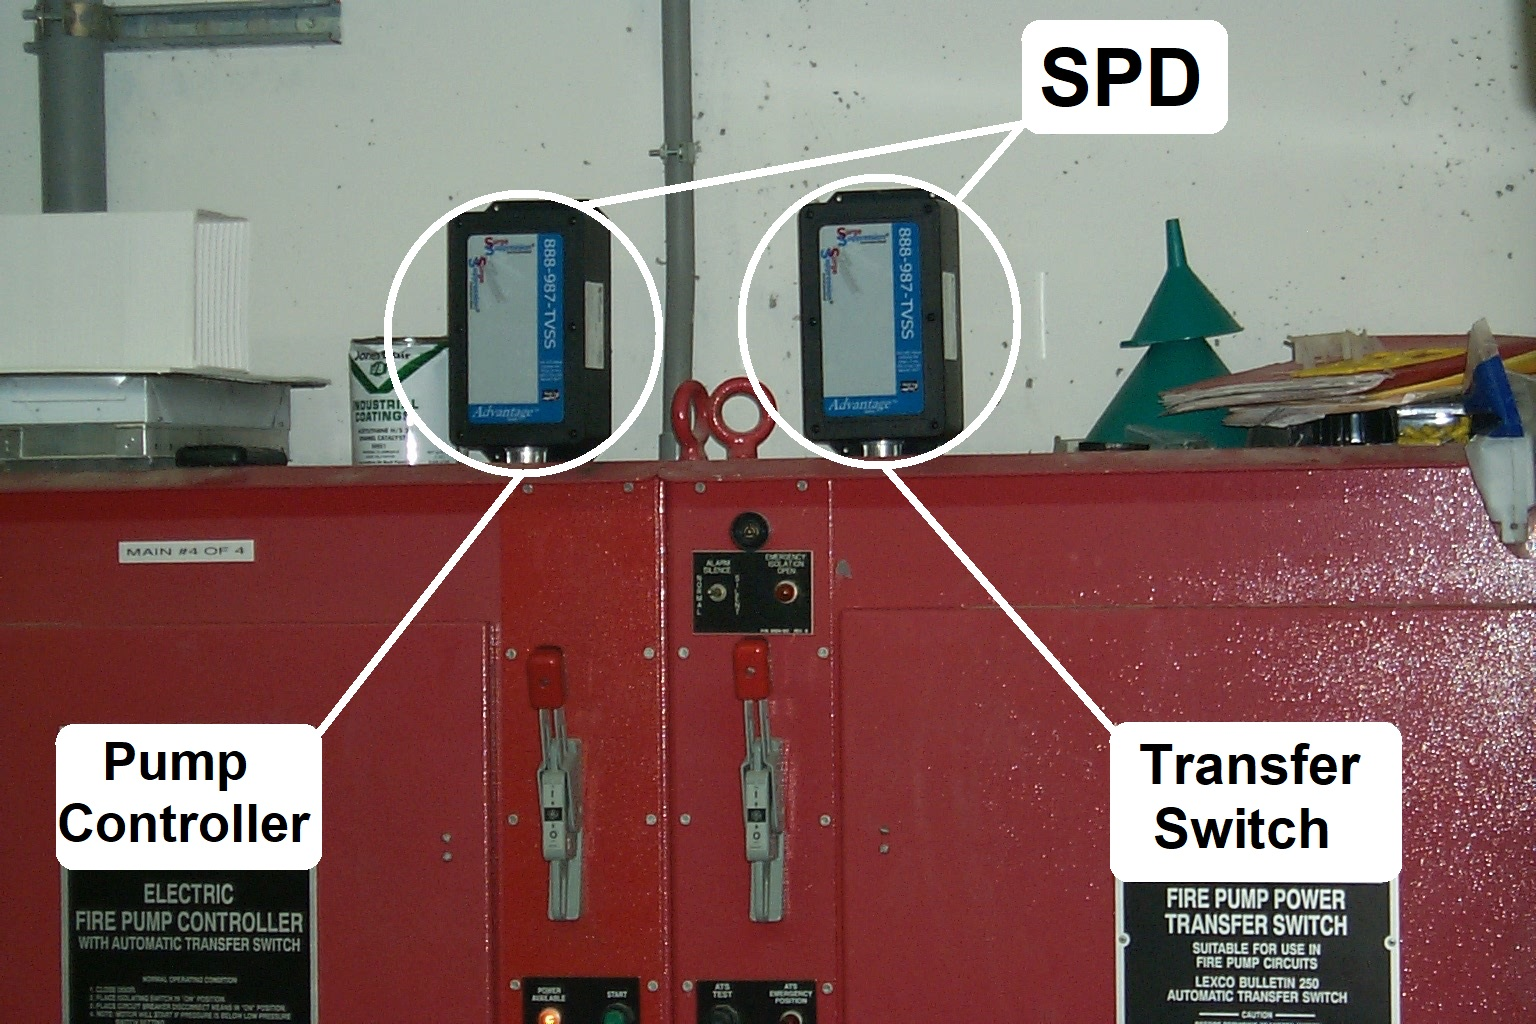 Fire Pump Controllers are critical and sensitive life-safety equipment. Use High Quality, High Performance SPDs for real protection results. Get the Right Gear!